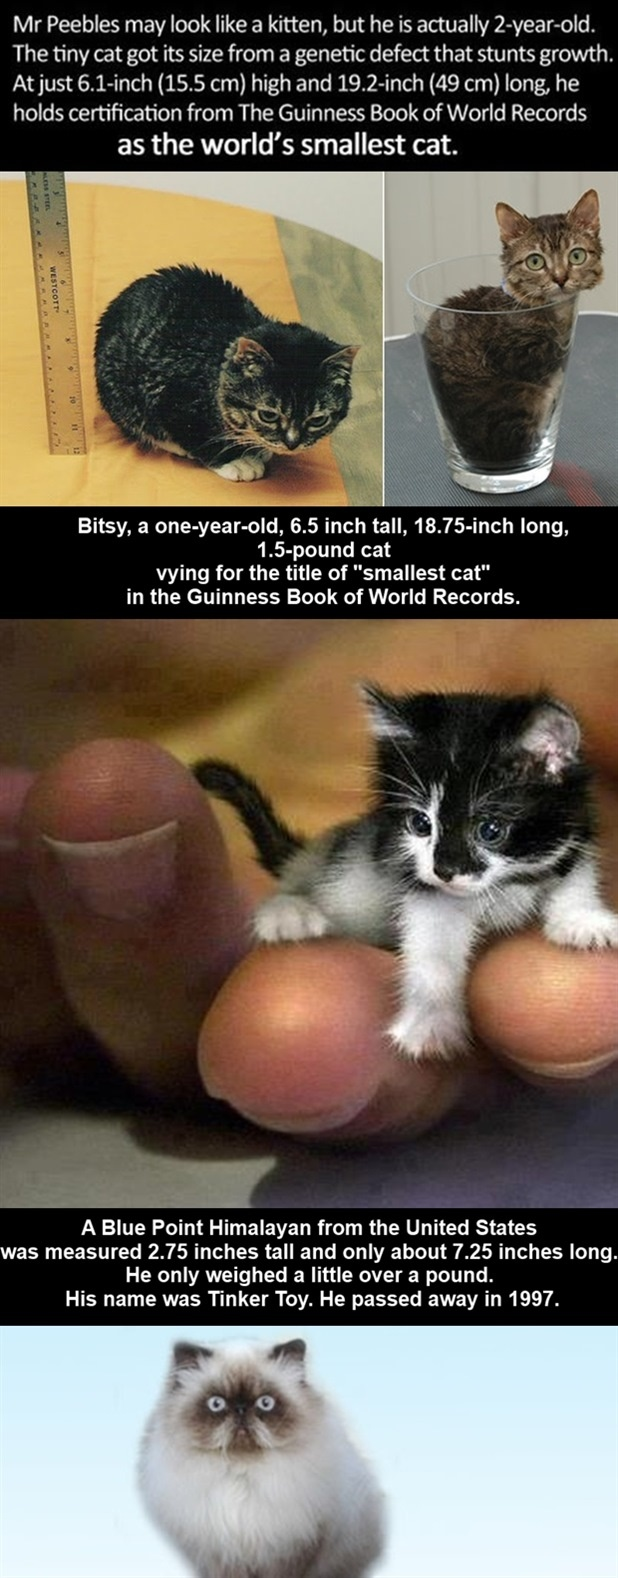 peebles smallest cat in the world - Smallest Cat In The World Guinness 2017